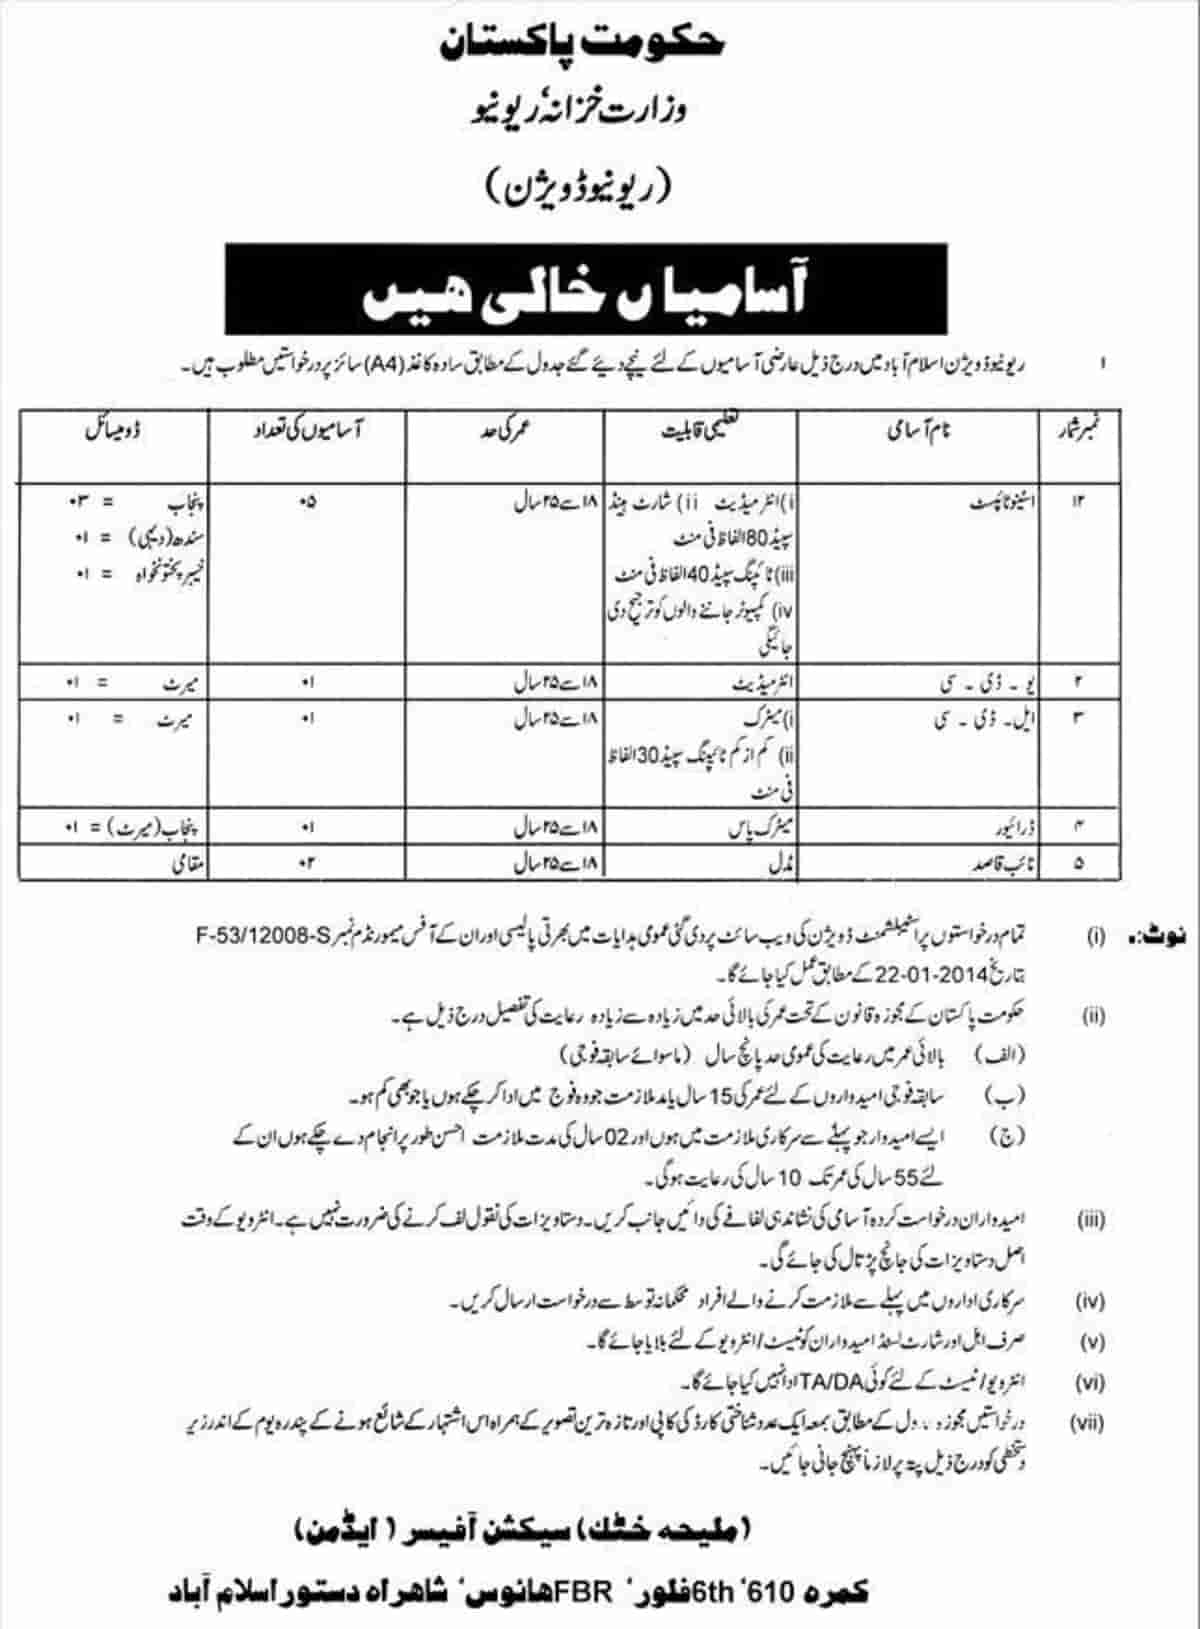 Government of Pakistan Ministry of Finance Revenue Division Islamabad Jobs 2020